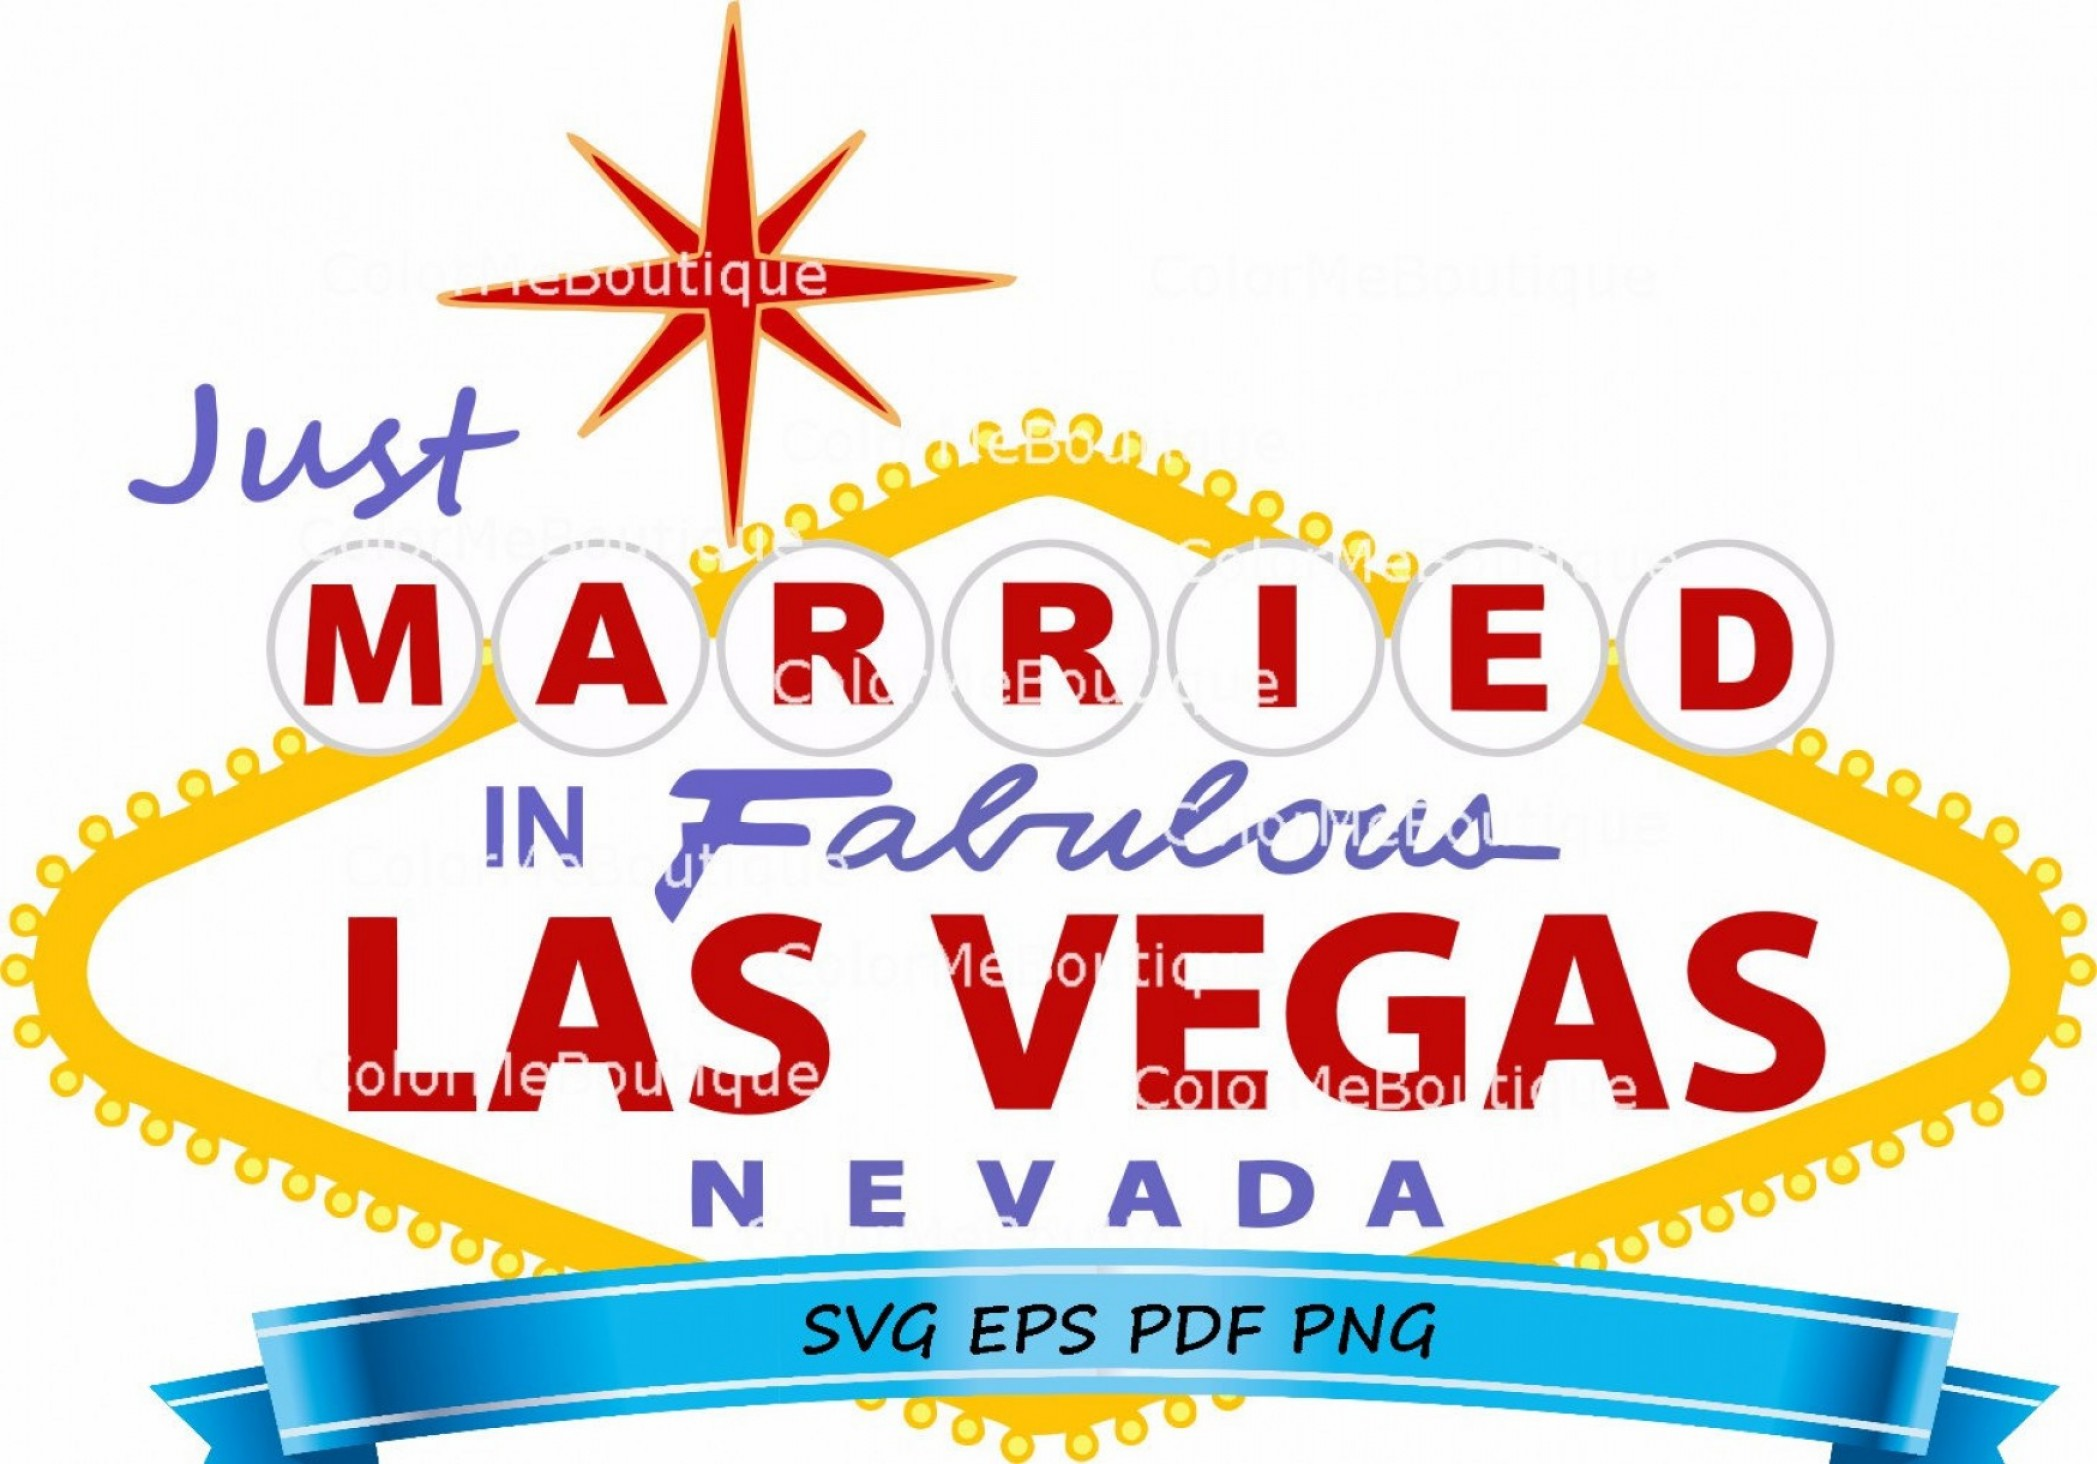 Just married in sign. Las vegas clipart